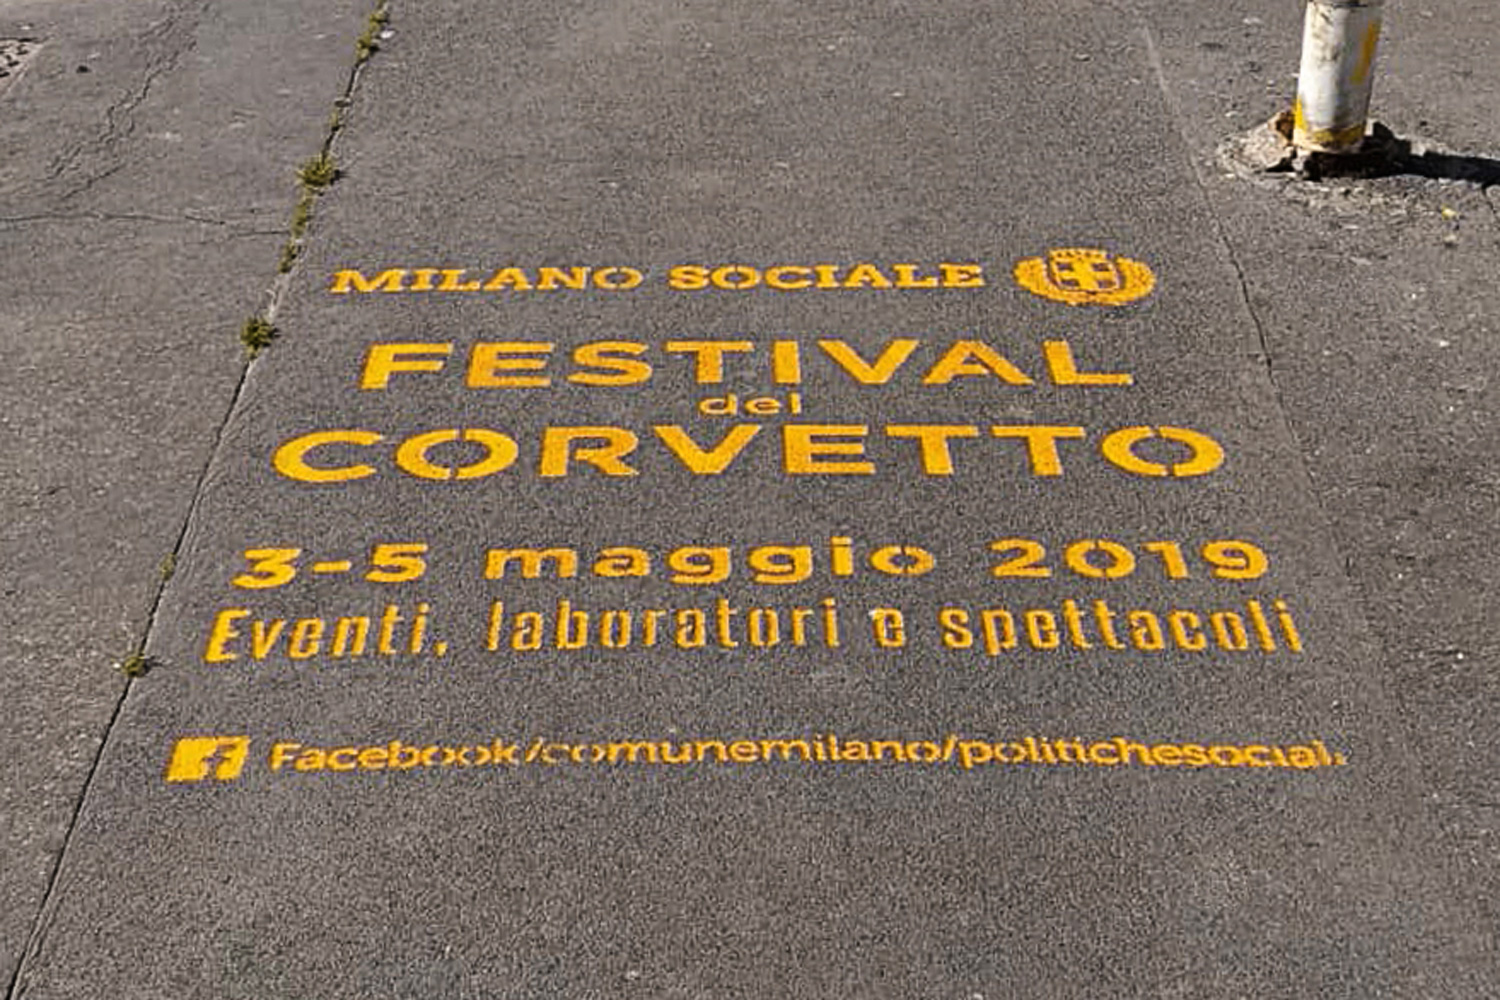 street advertising comune di milano corvetto festival